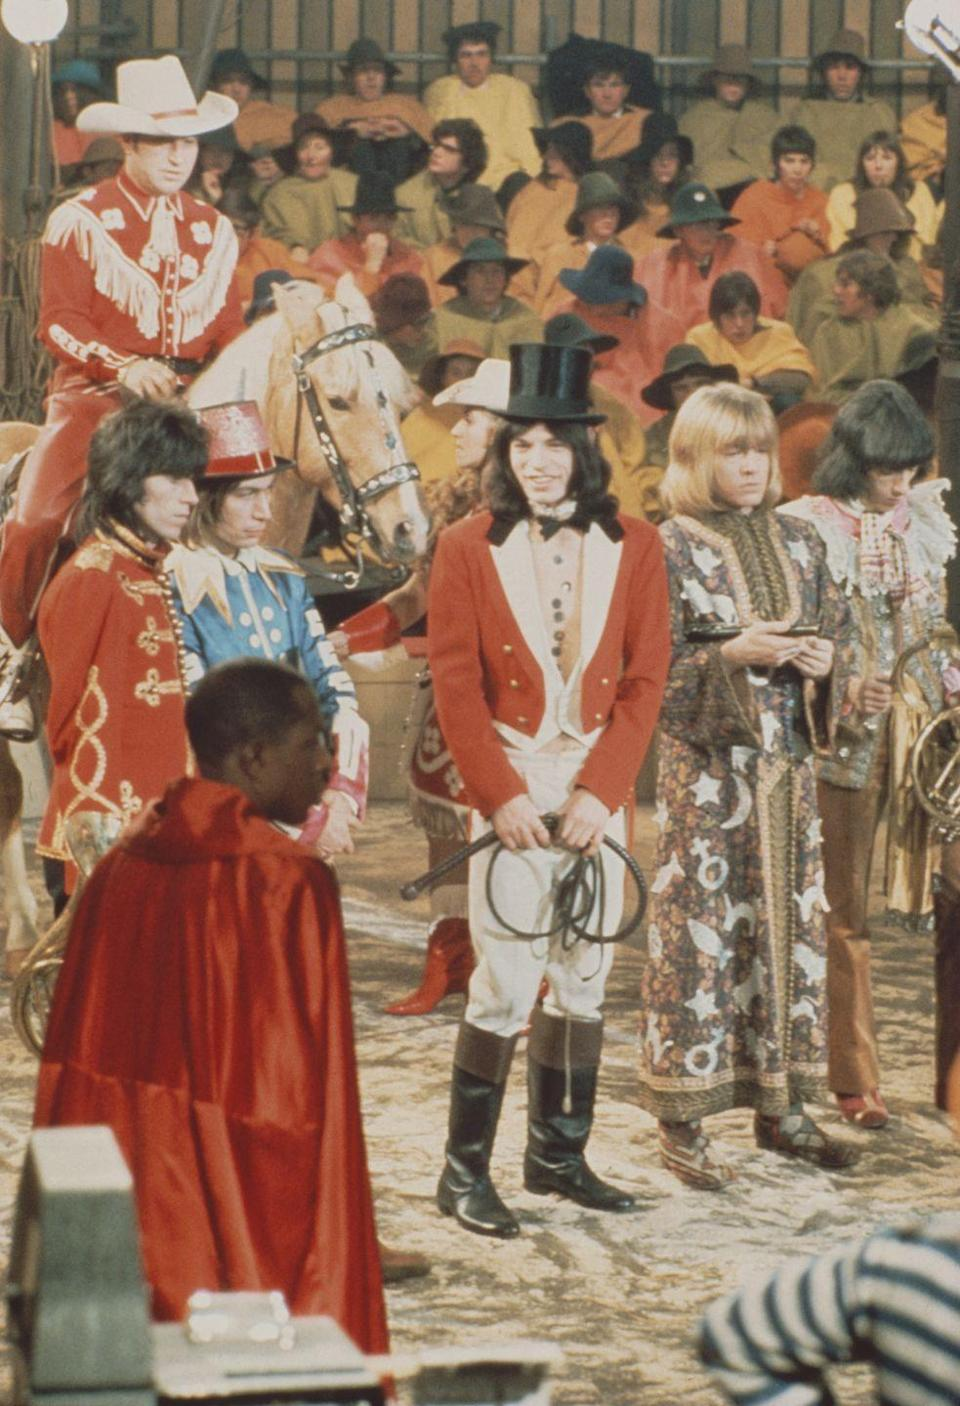 <p>From left to right: Keith Richards, Charlie Watts, Mick Jagger, Brian Jones, and Bill Wyman from The Rolling Stones pose on the set of the Rolling Stones Rock and Roll Circus at Intertel TV Studio in Wembley, London on 11th December 1968.</p>